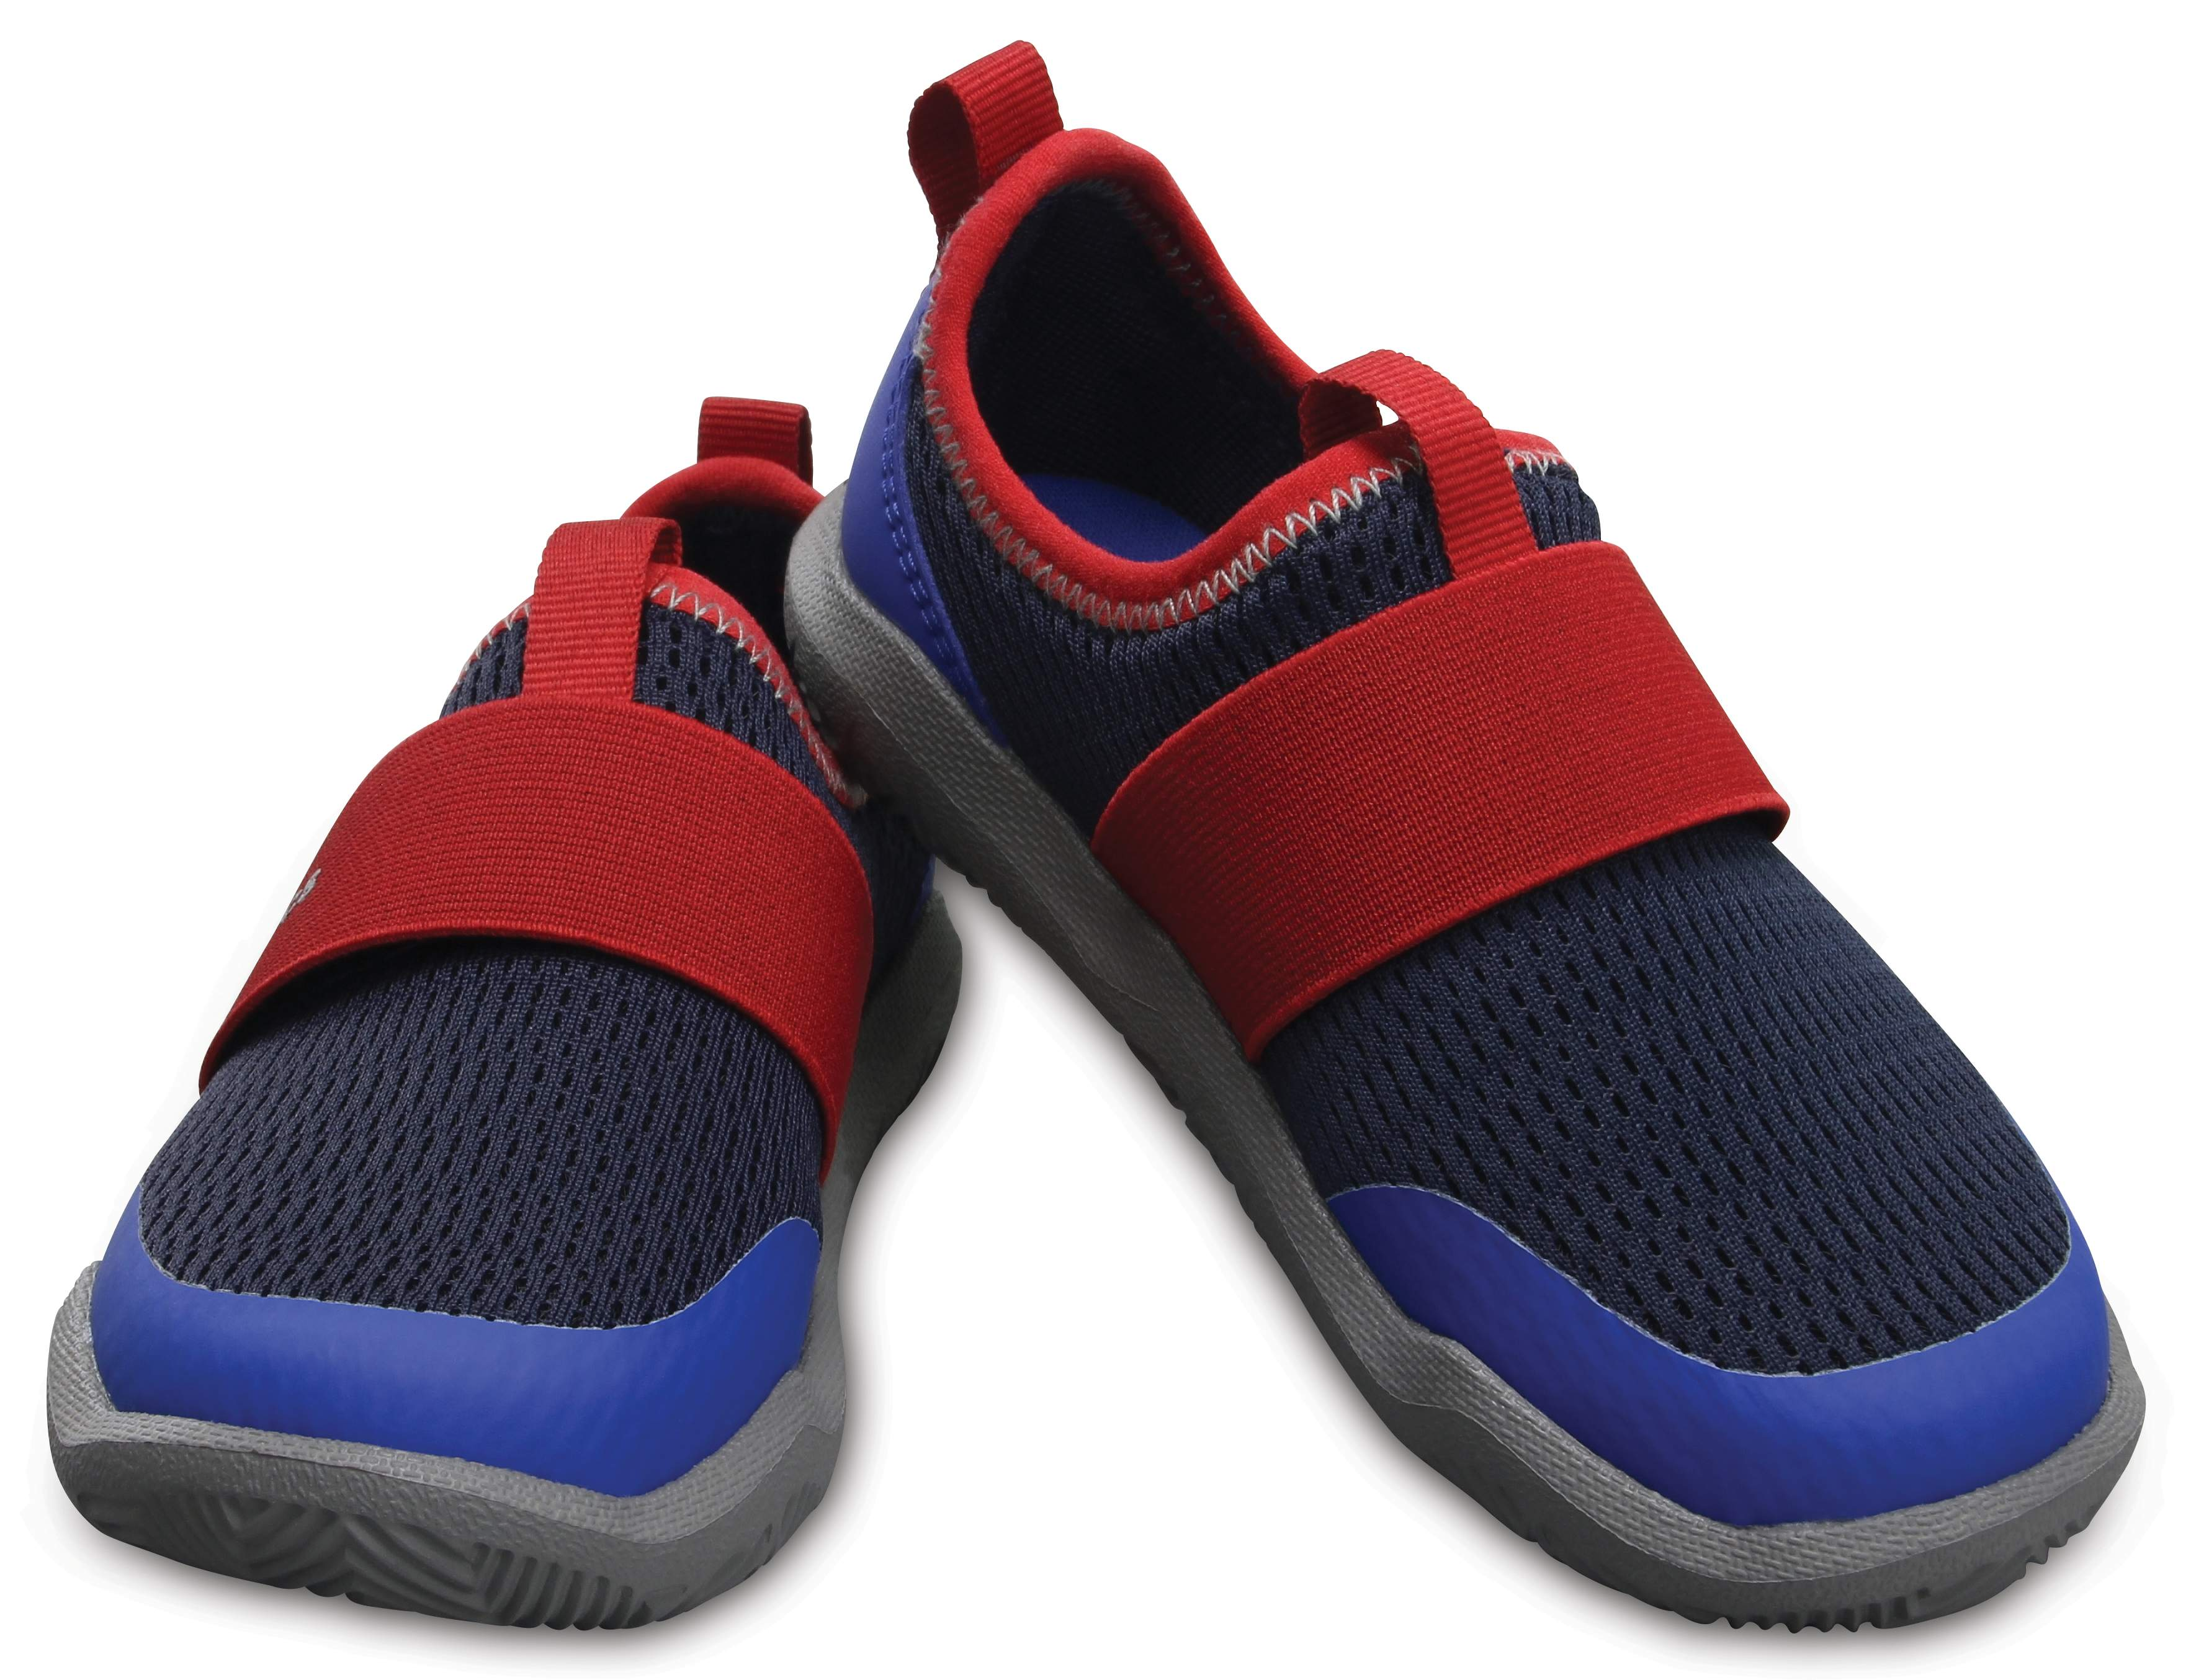 Crocs Kids' Swiftwater Easy-On Shoes Blue 204022-4CC